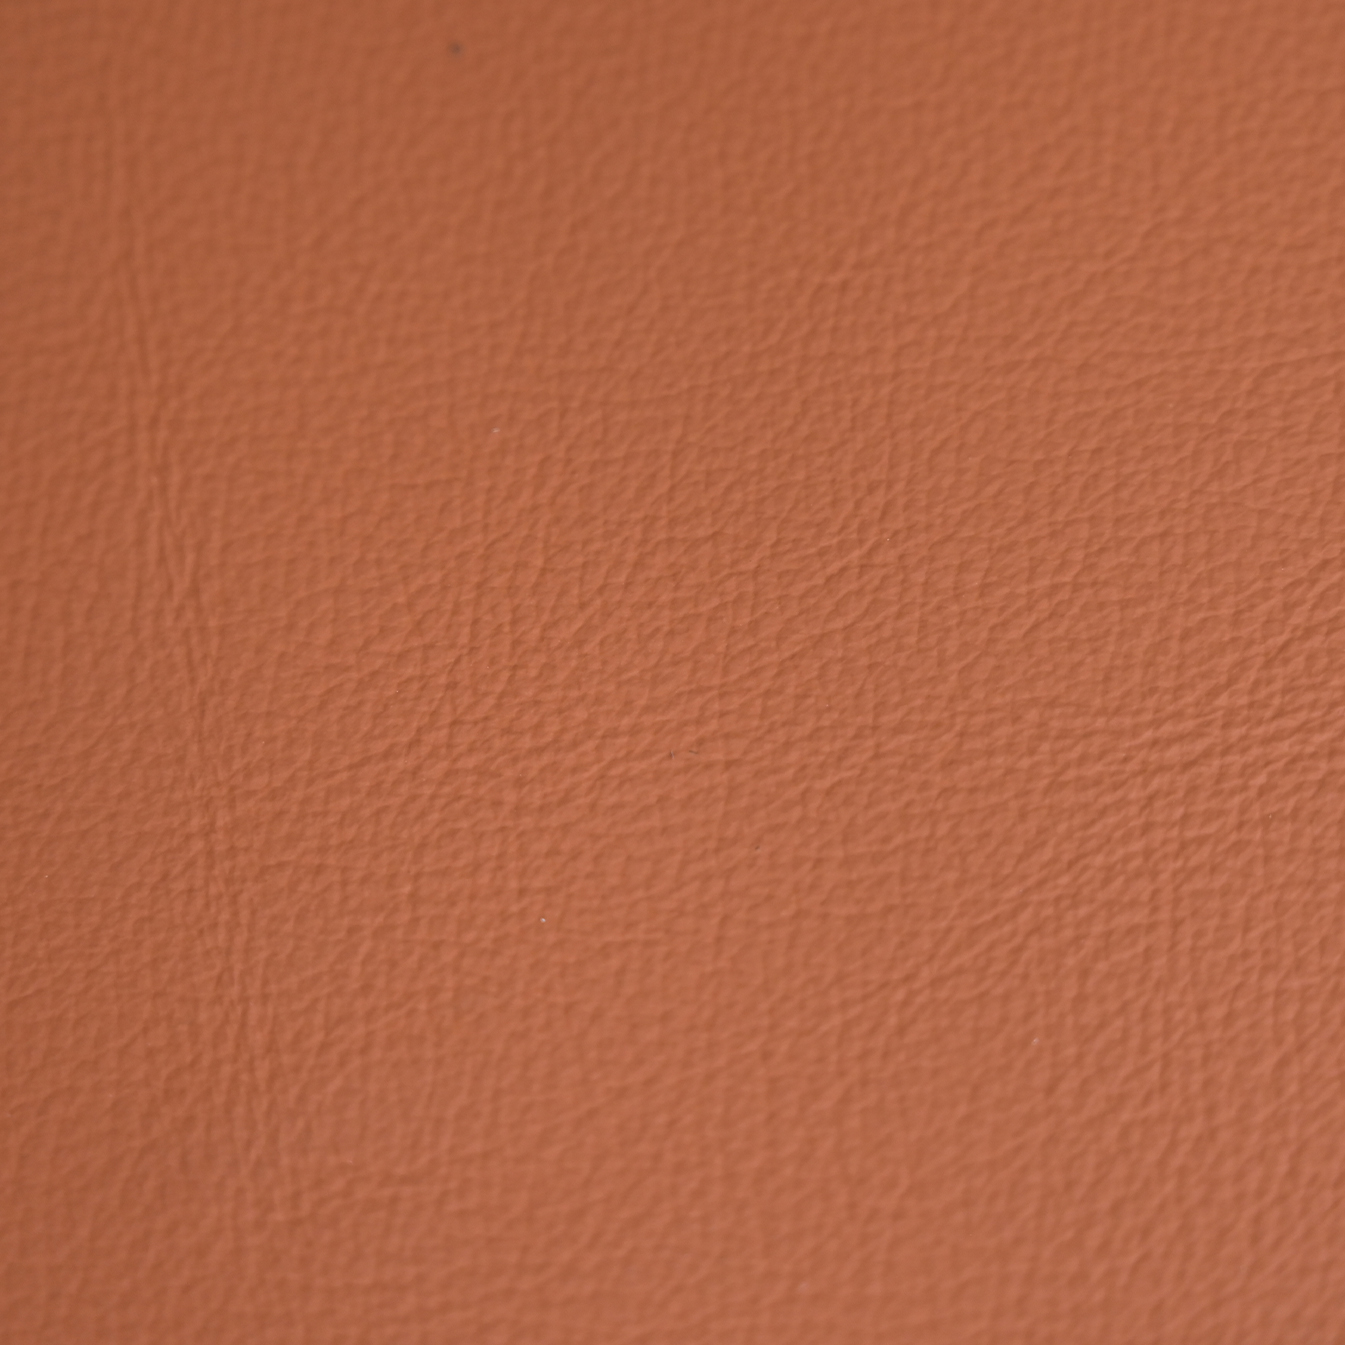 nappa leather in ginger color